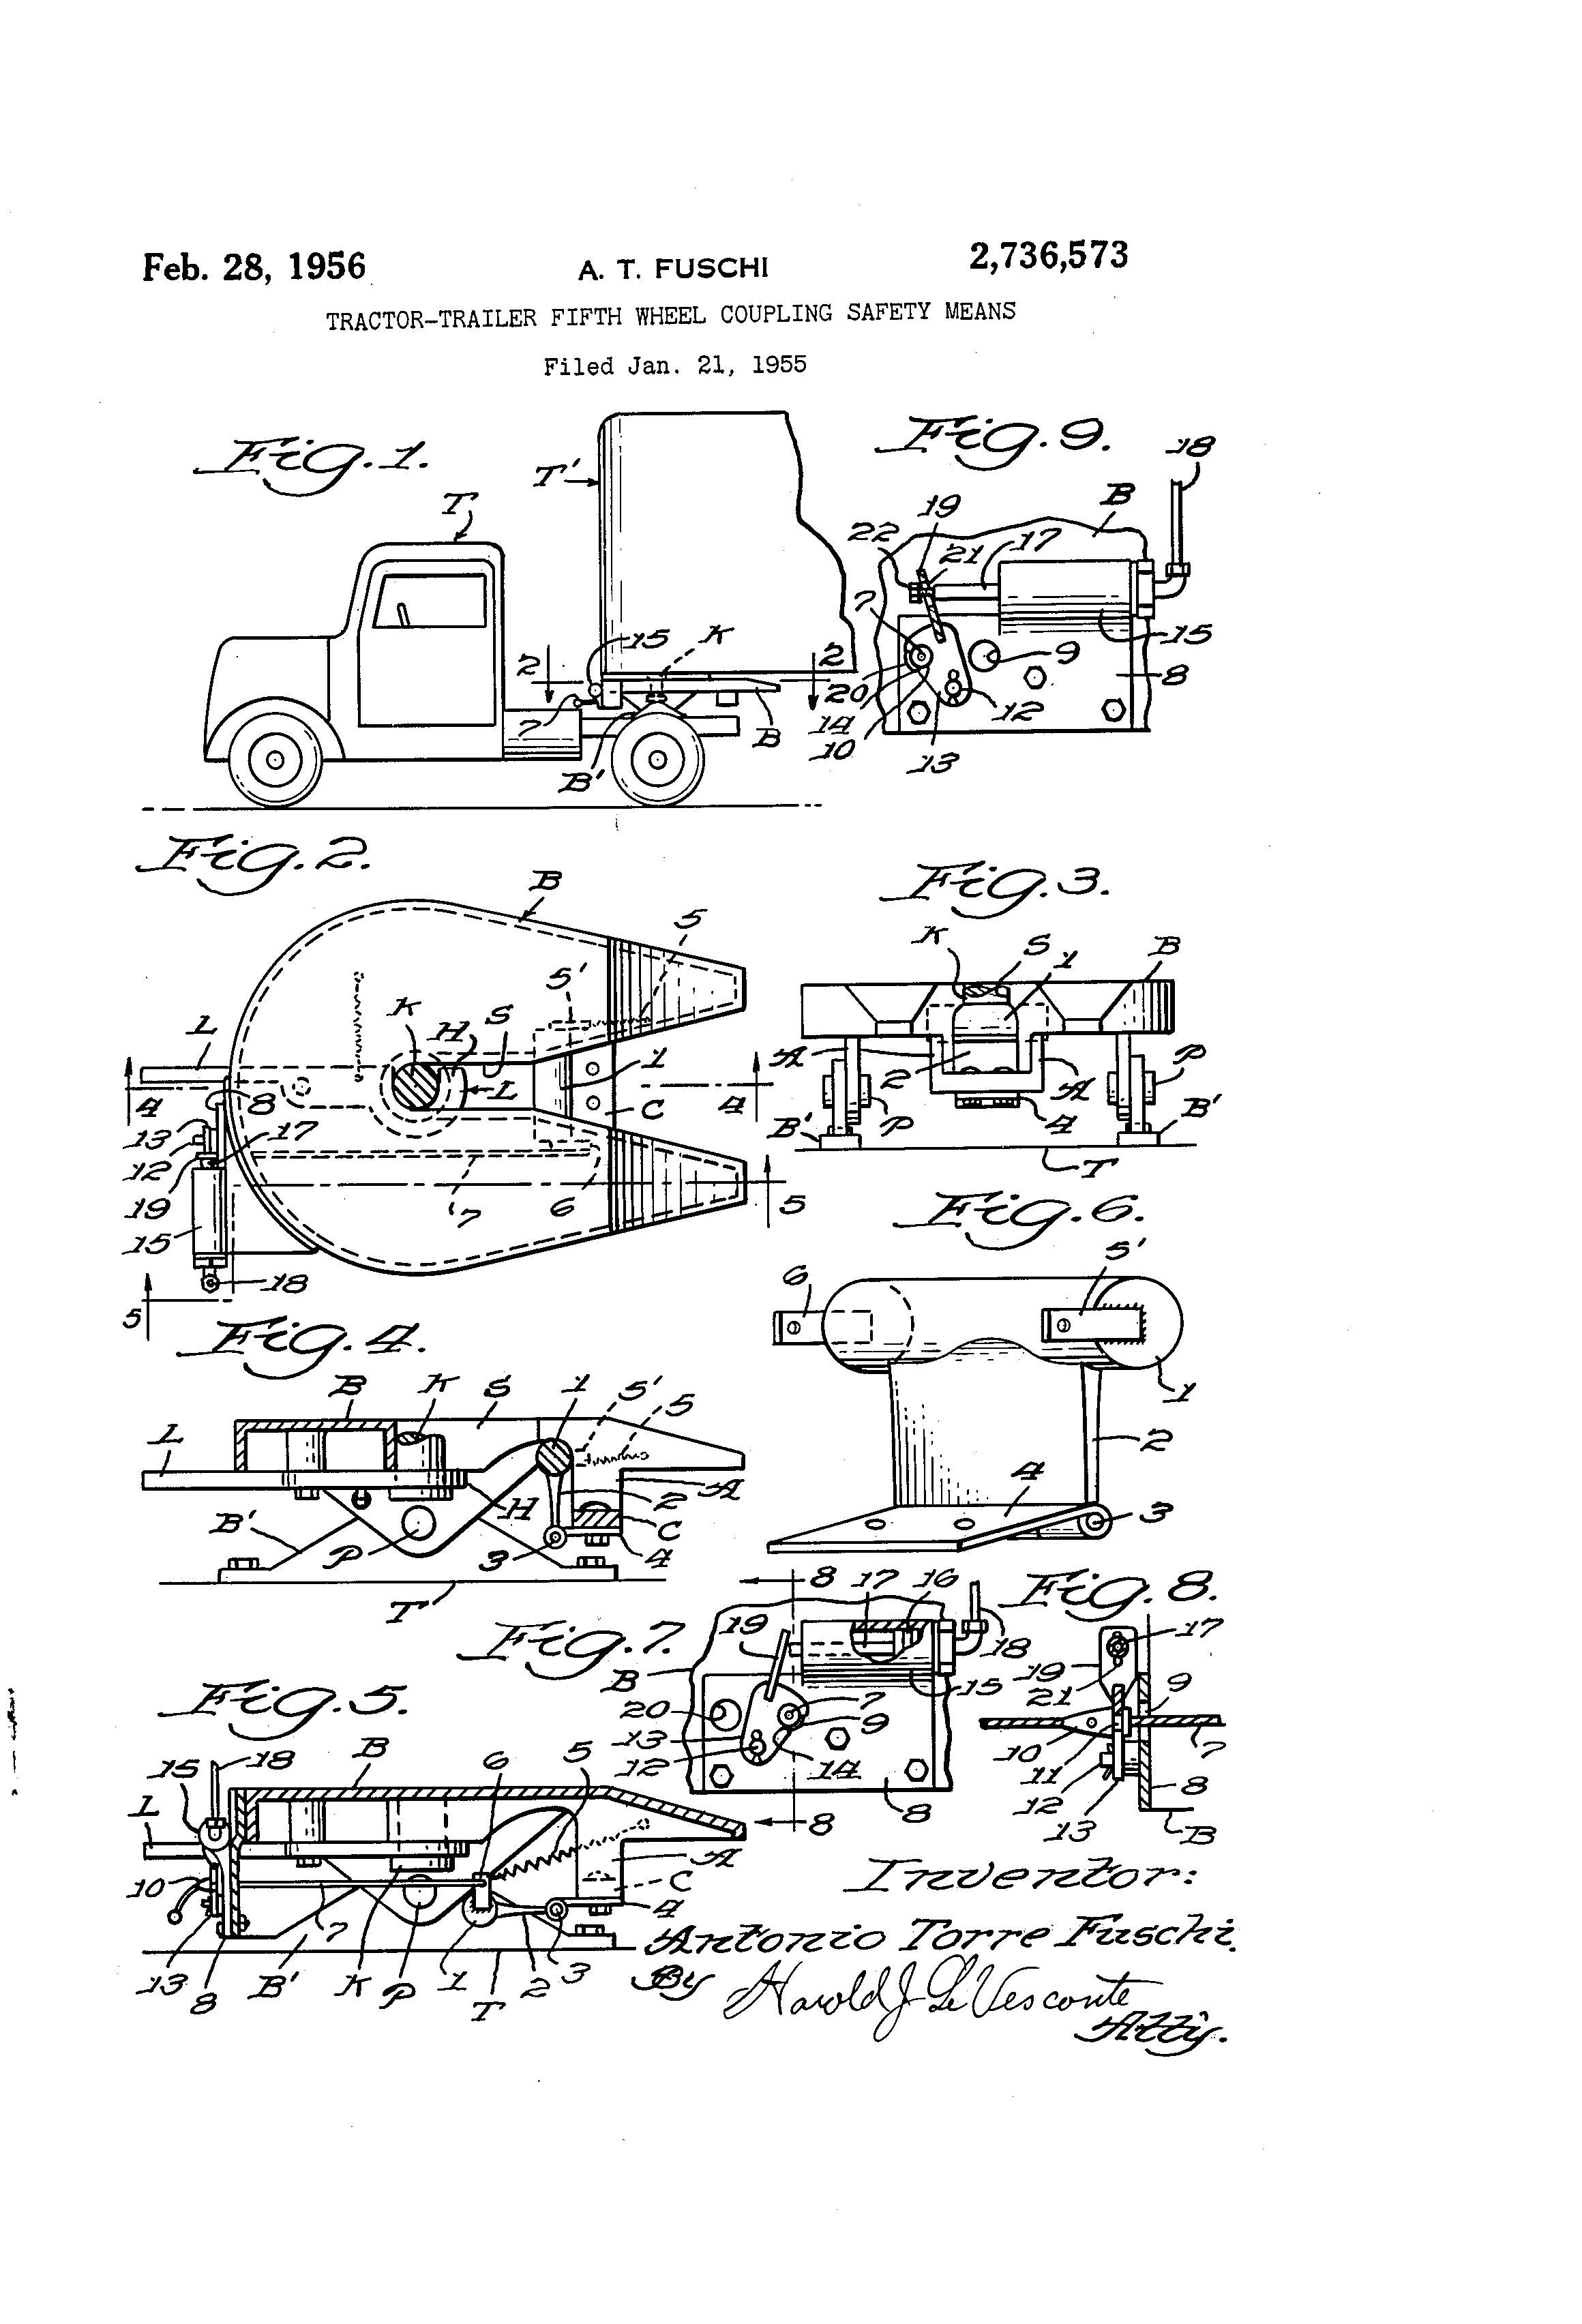 patent us2736573 - tractor-trailer fifth wheel coupling safety means